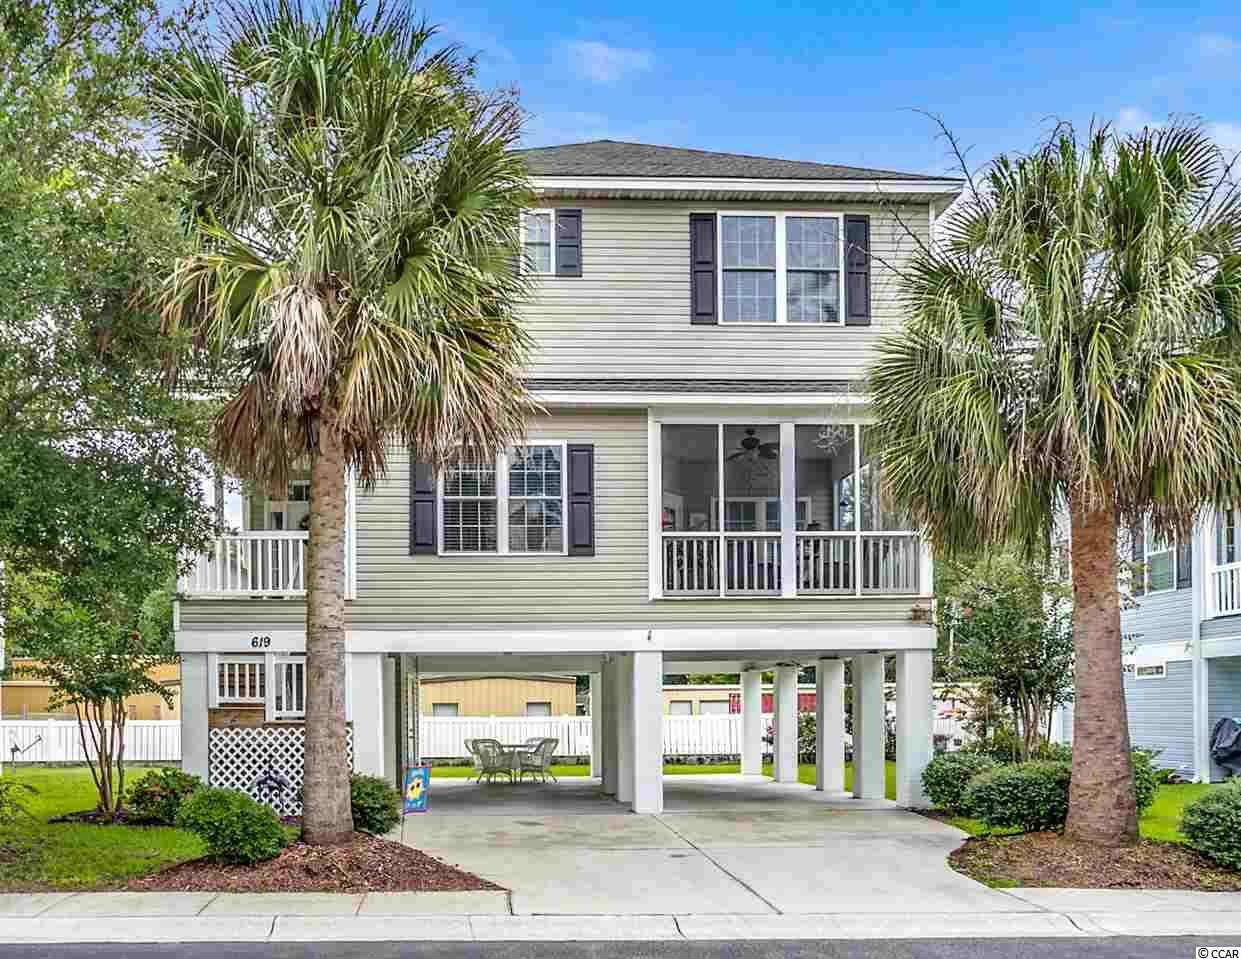 619 South Palmetto Way,Myrtle Beach  SC